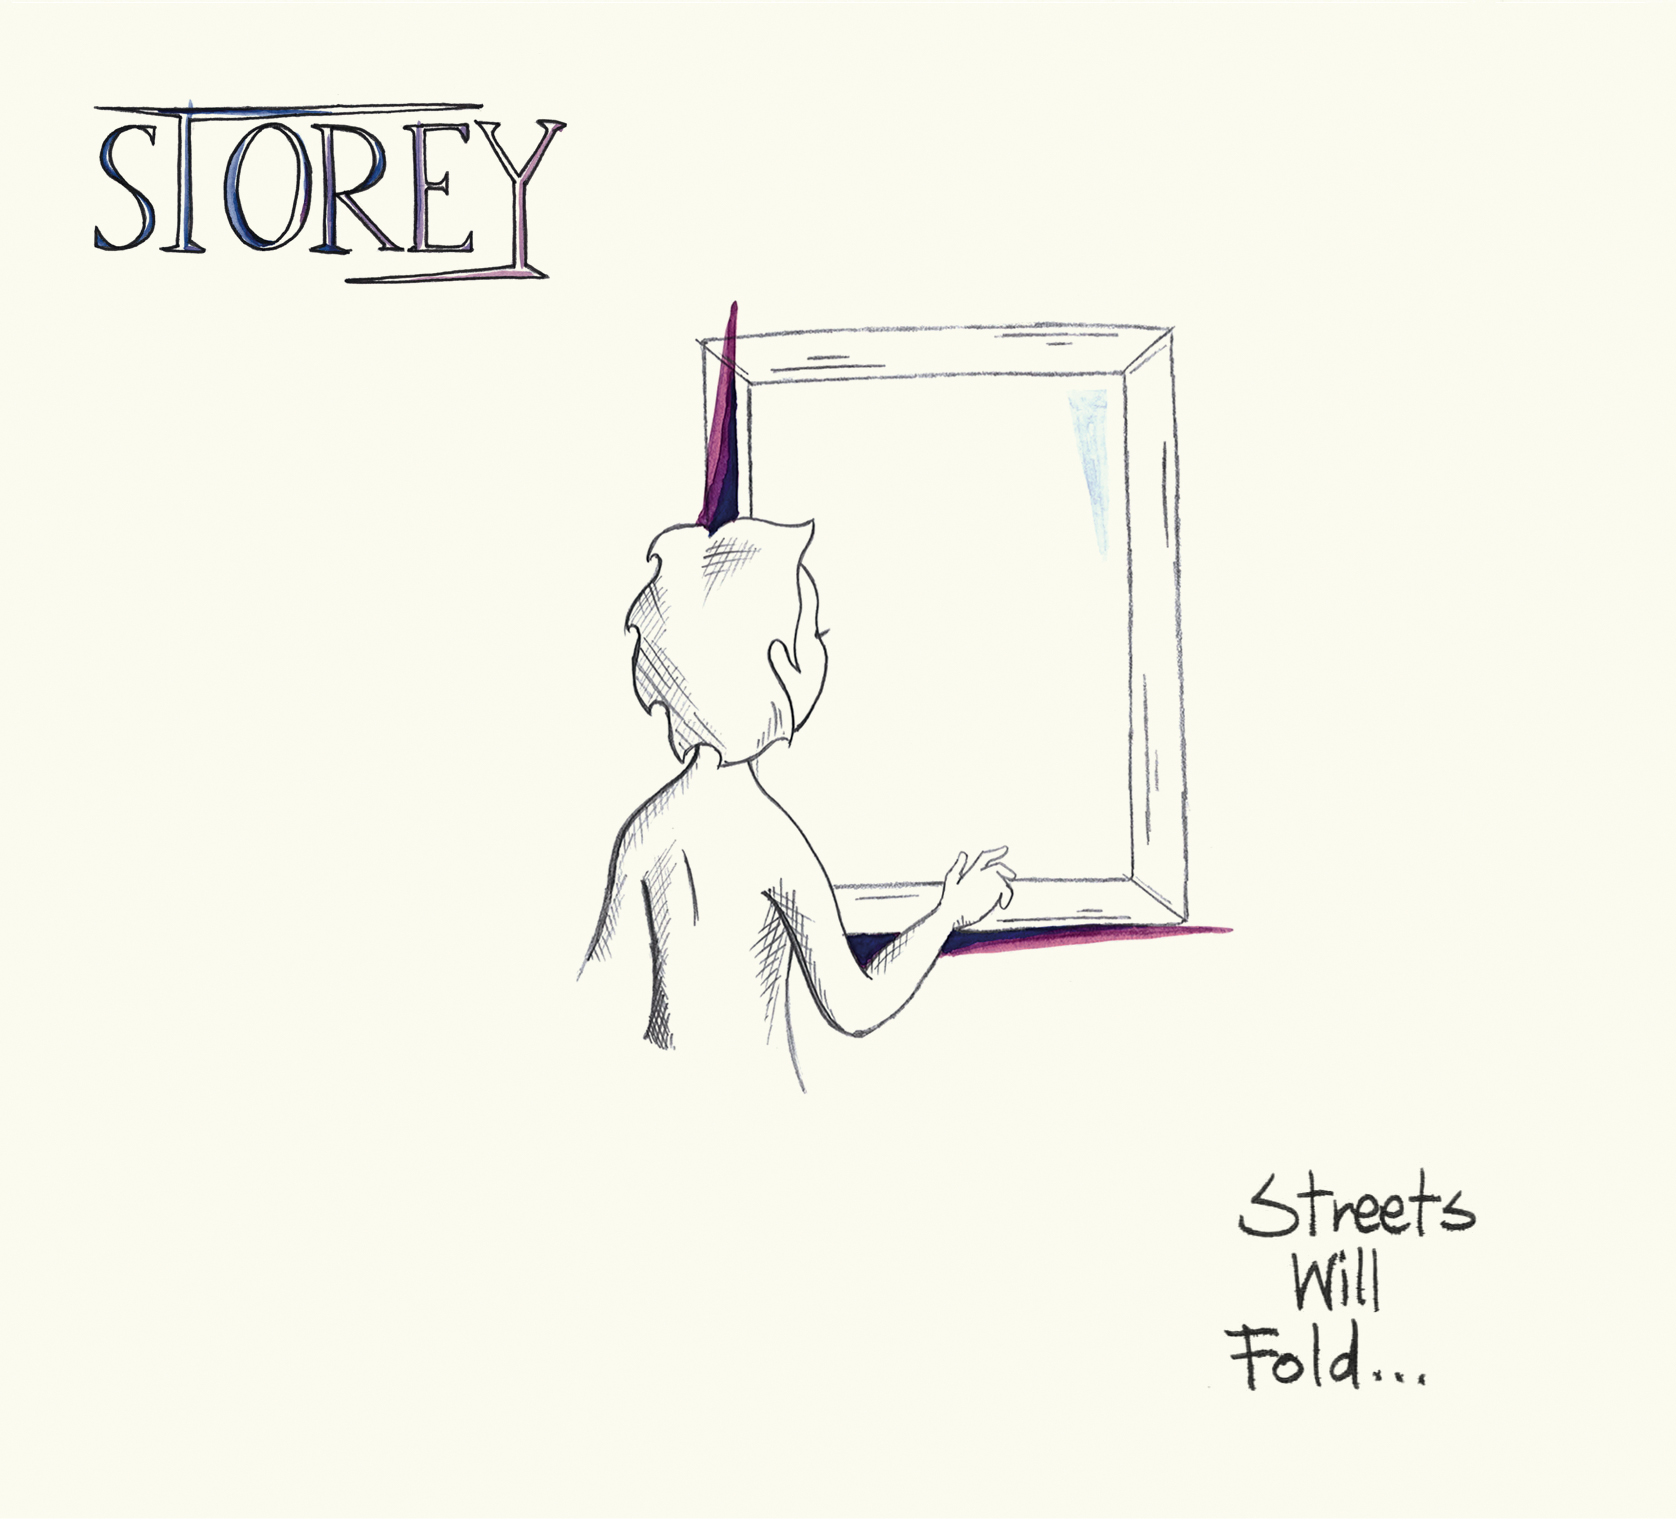 Storey, Streets Will Fold. Produced by composer Arron Storey